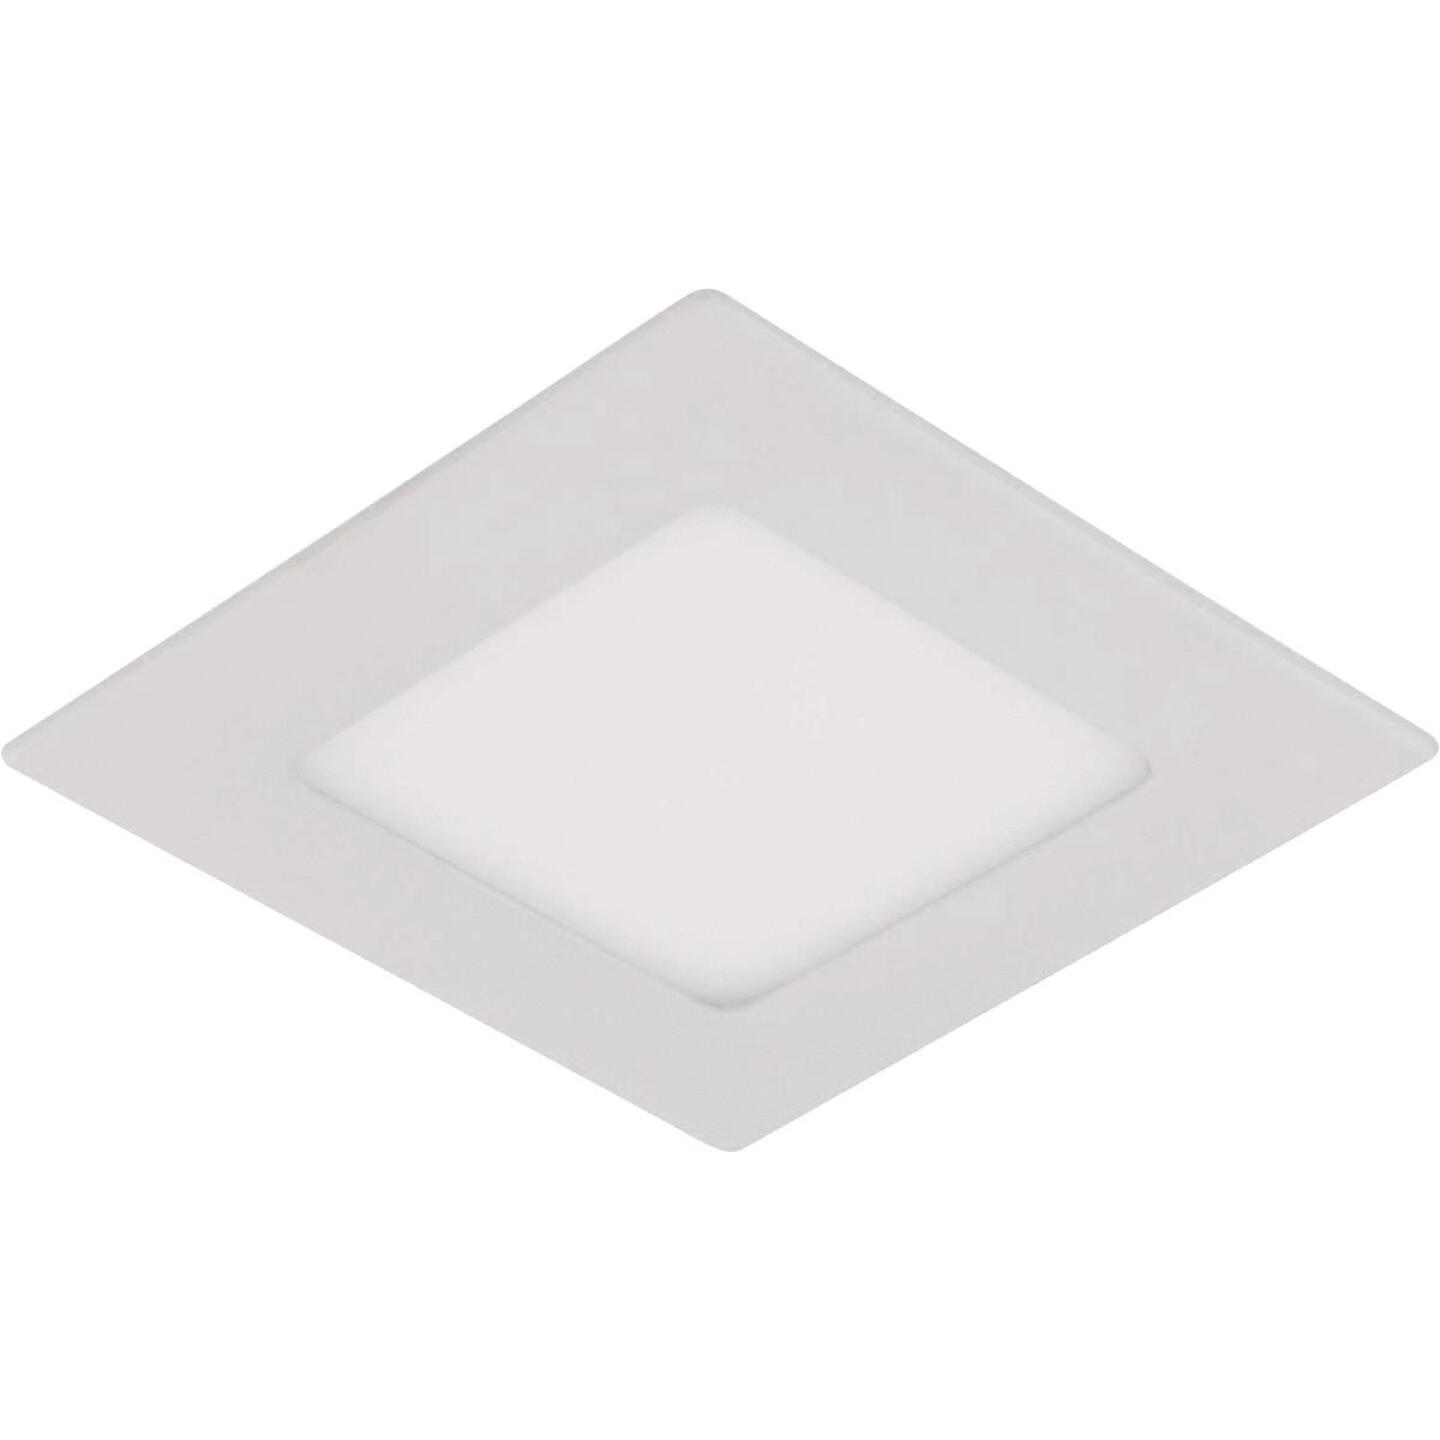 Liteline Trenz ThinLED 4 In. New Construction/Remodel IC White 610 Lm. 4000K Square Recessed Light Kit Image 1